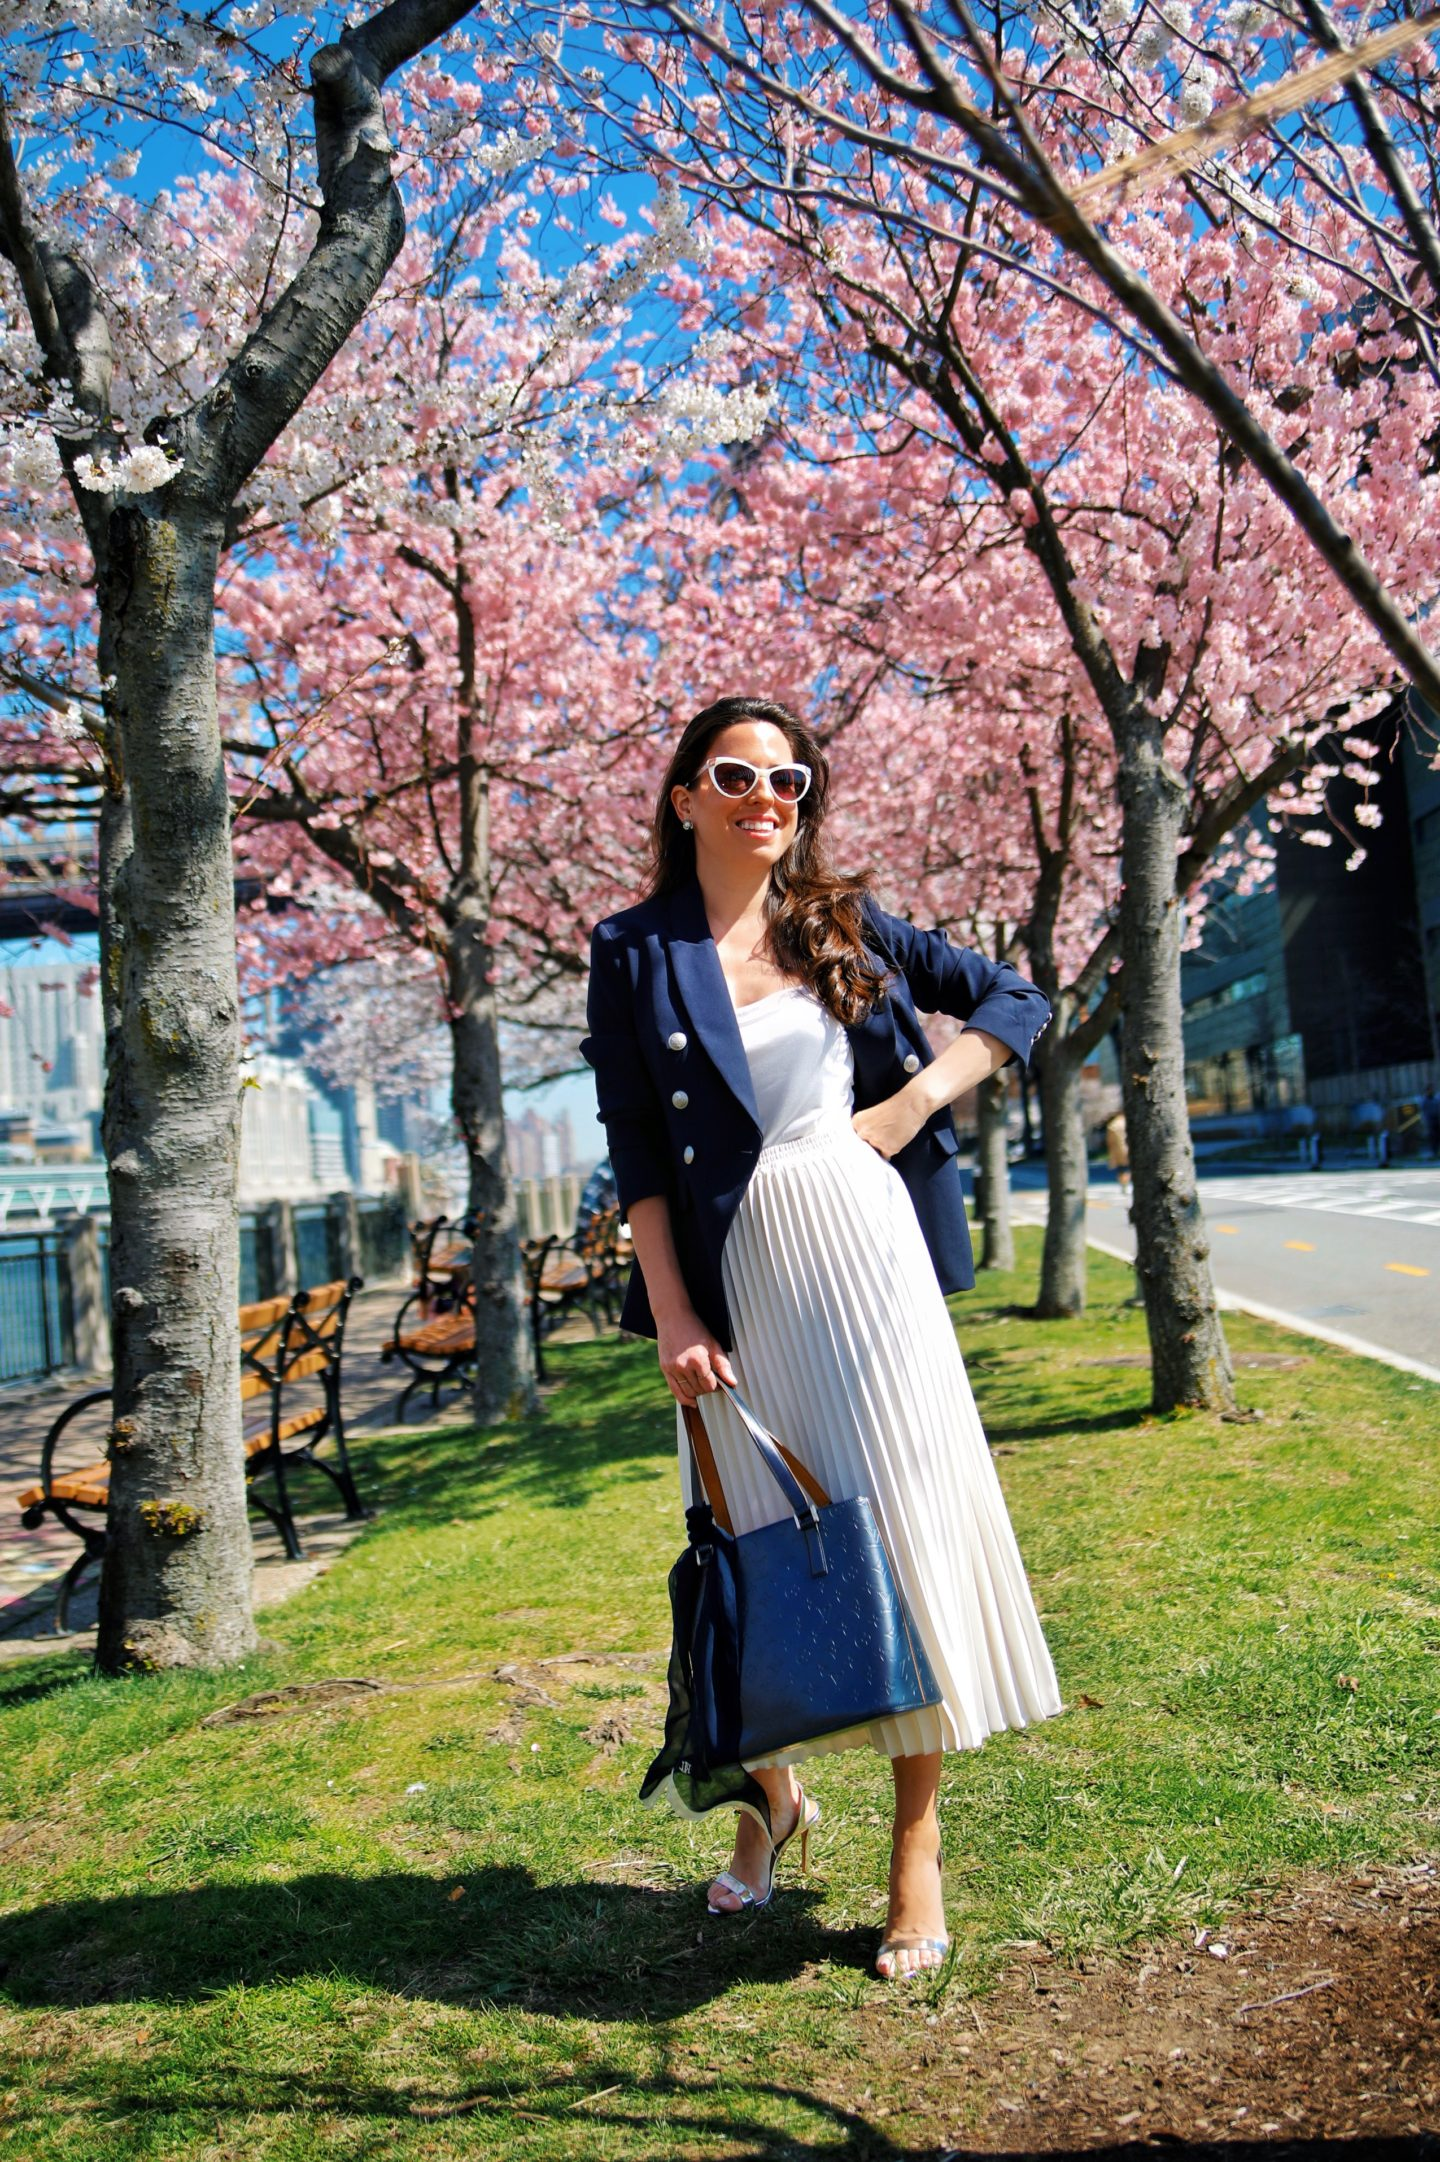 Ana Florentina wearing navy blazer and white pleated skirt spring outfit